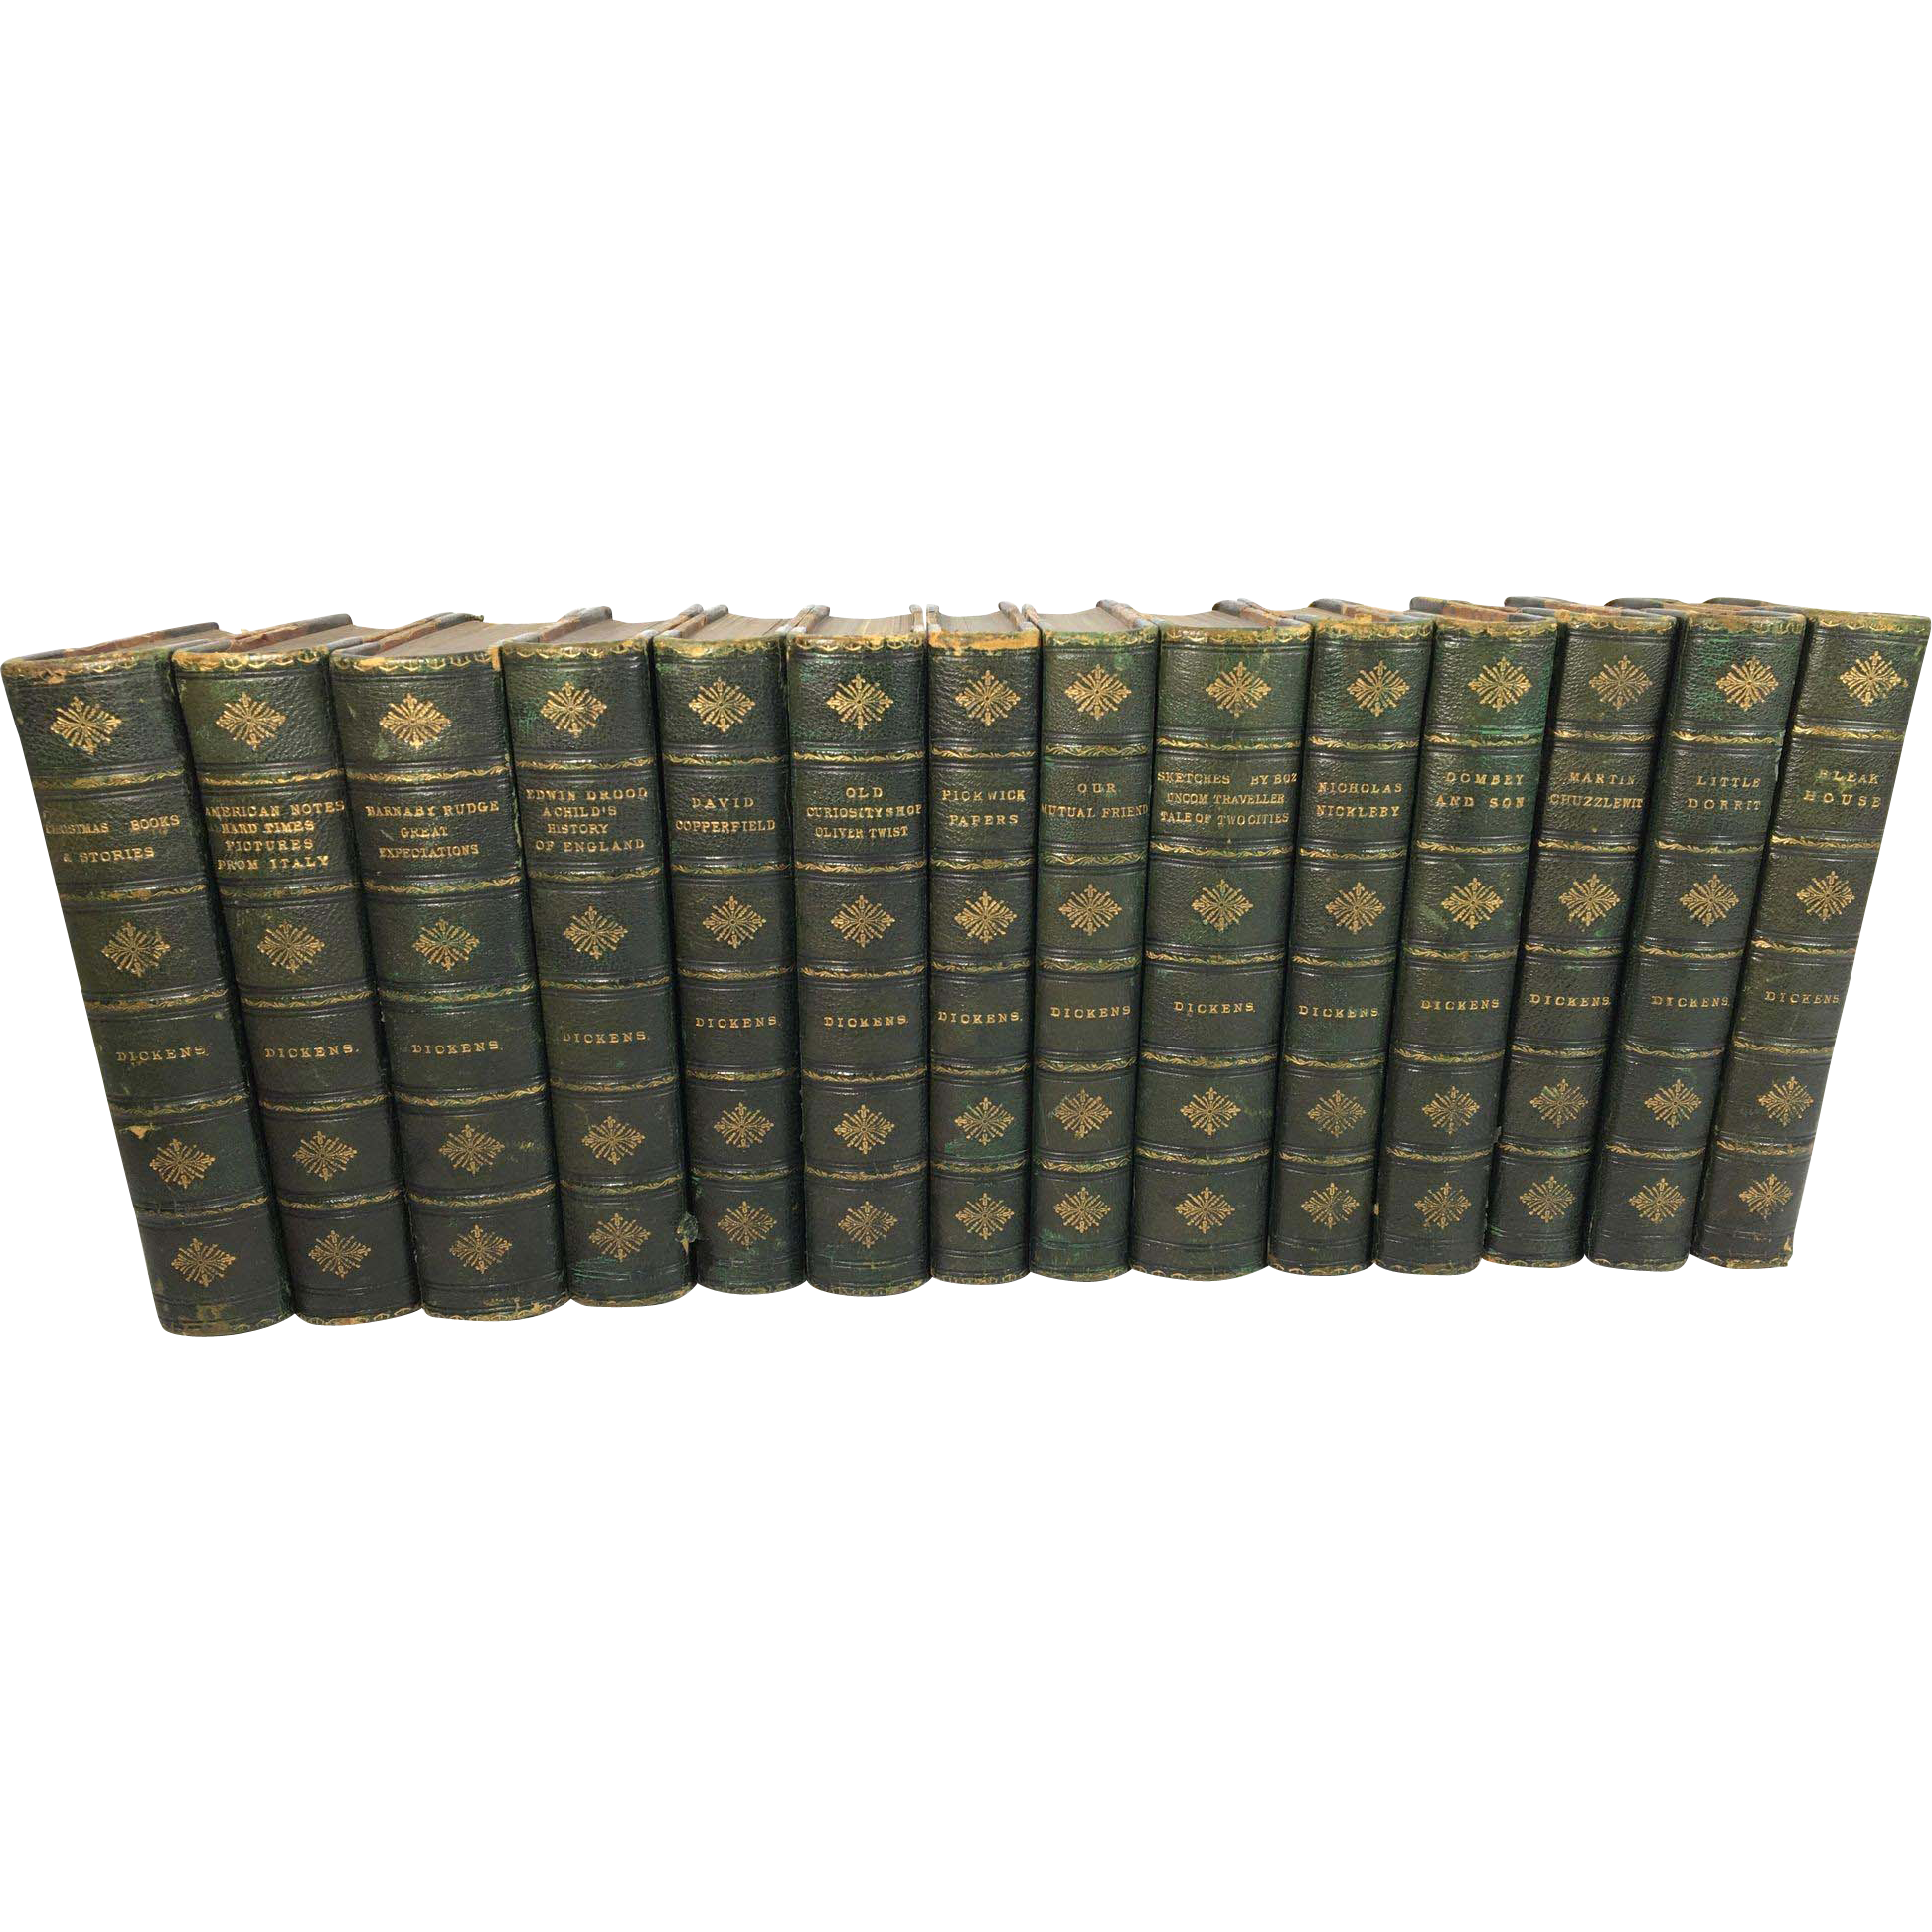 14 Volumes of Novels by Charles Dickens, Chapman and Hall, Charles Dickens Edition, c. 1870